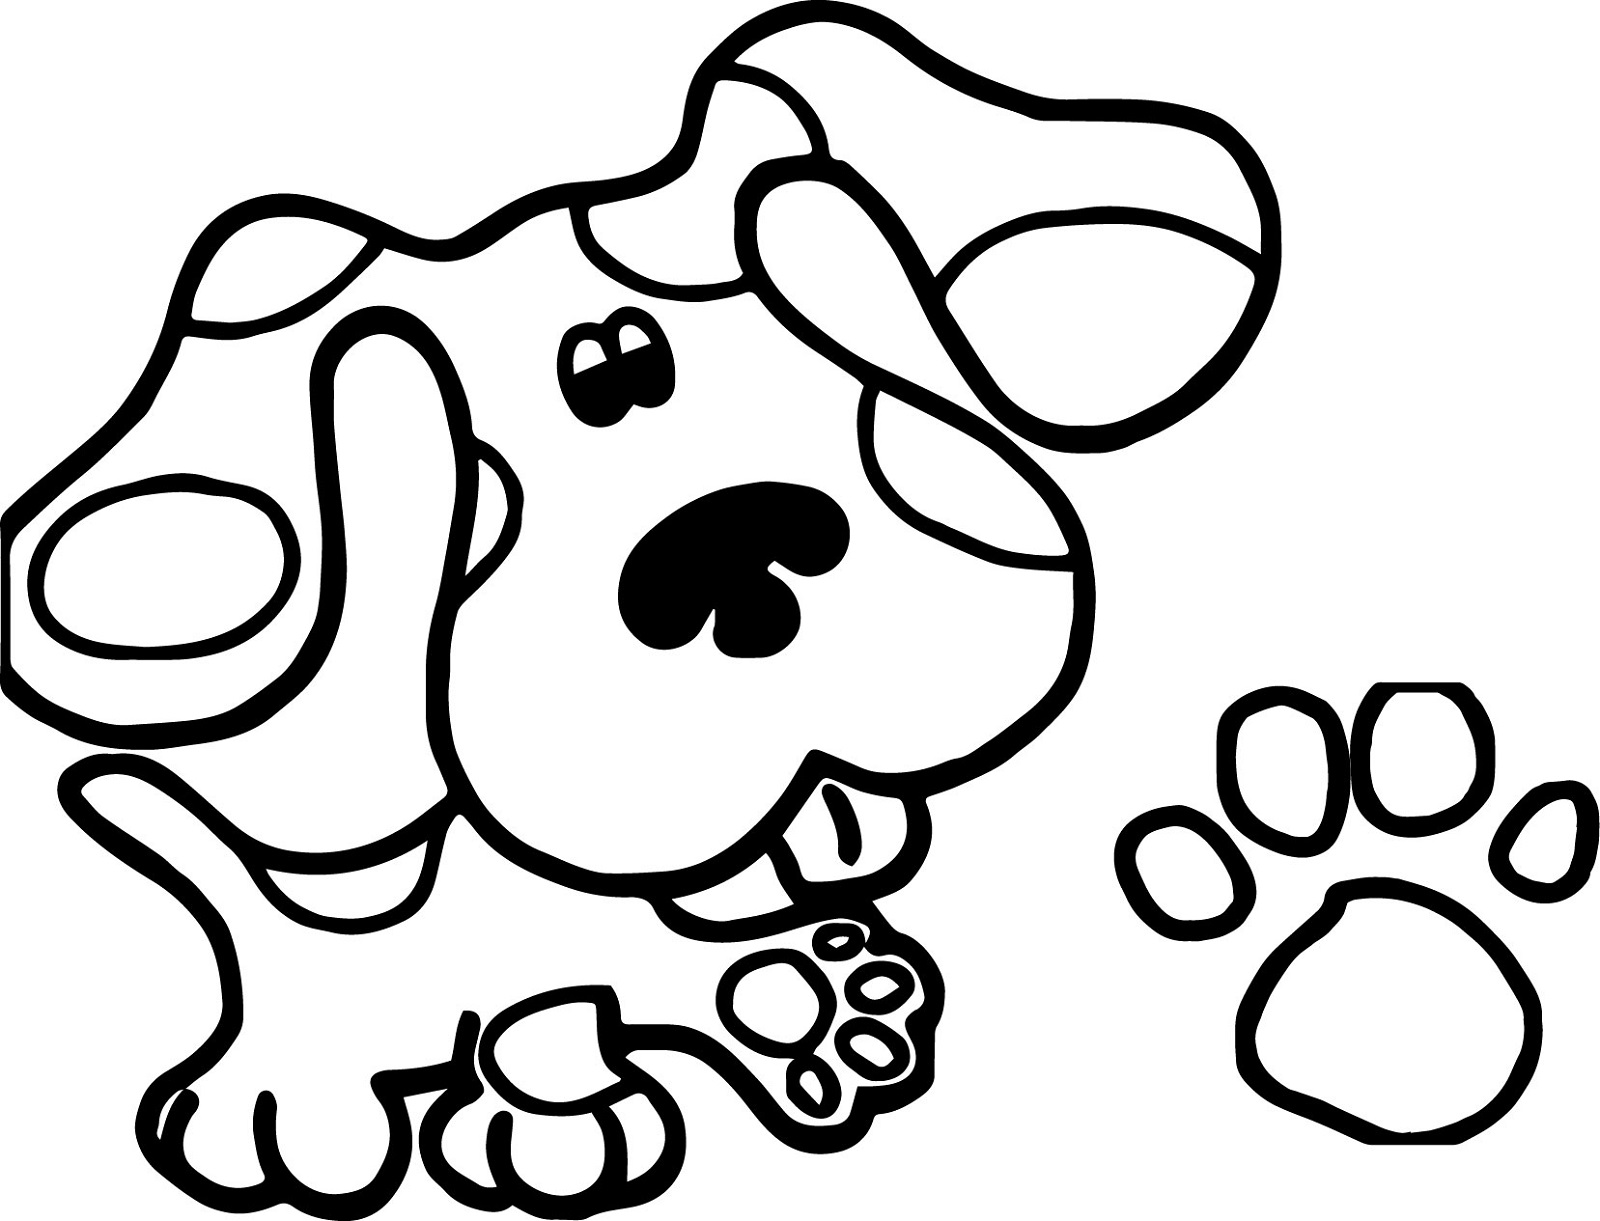 paw print coloring page 5